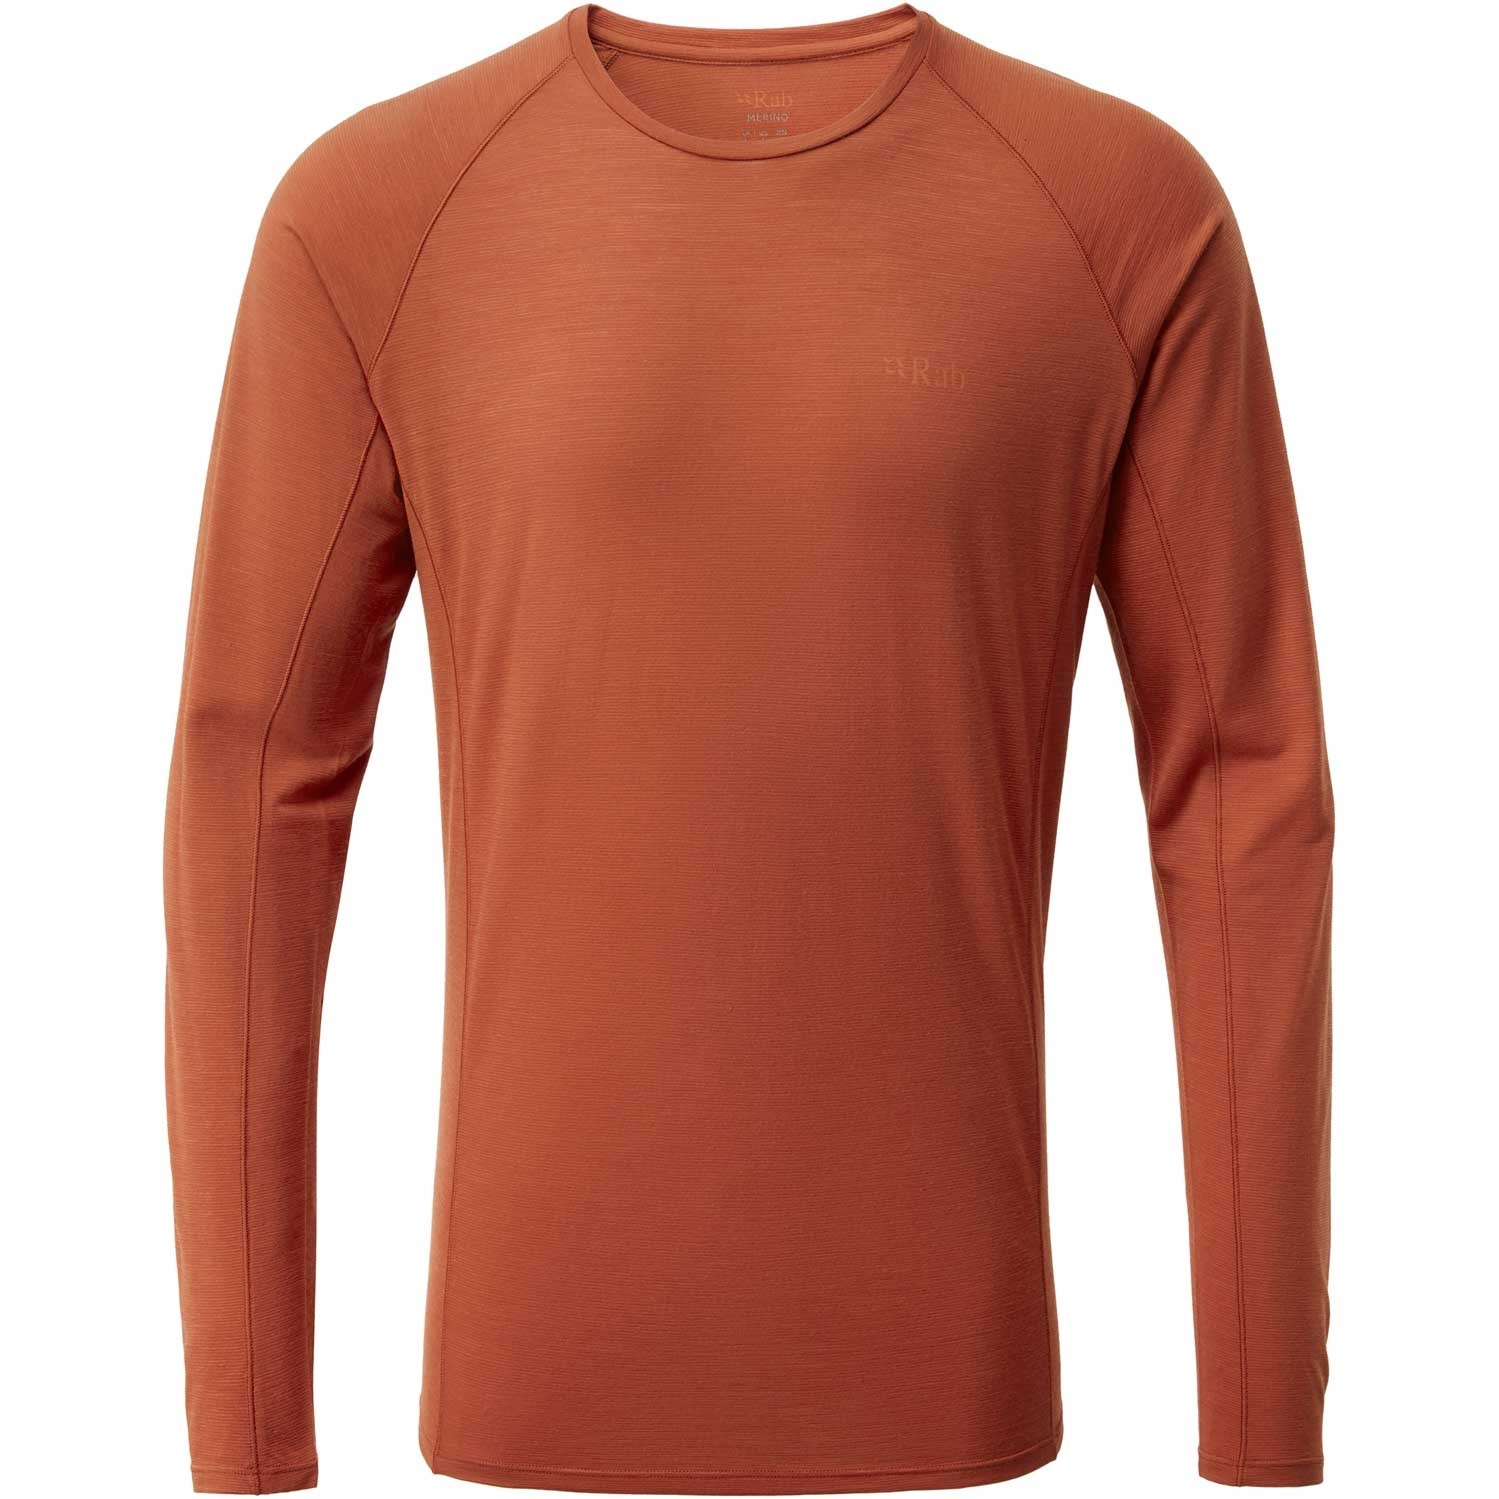 Rab Forge Long Sleeve Tee - Men's - Red Clay